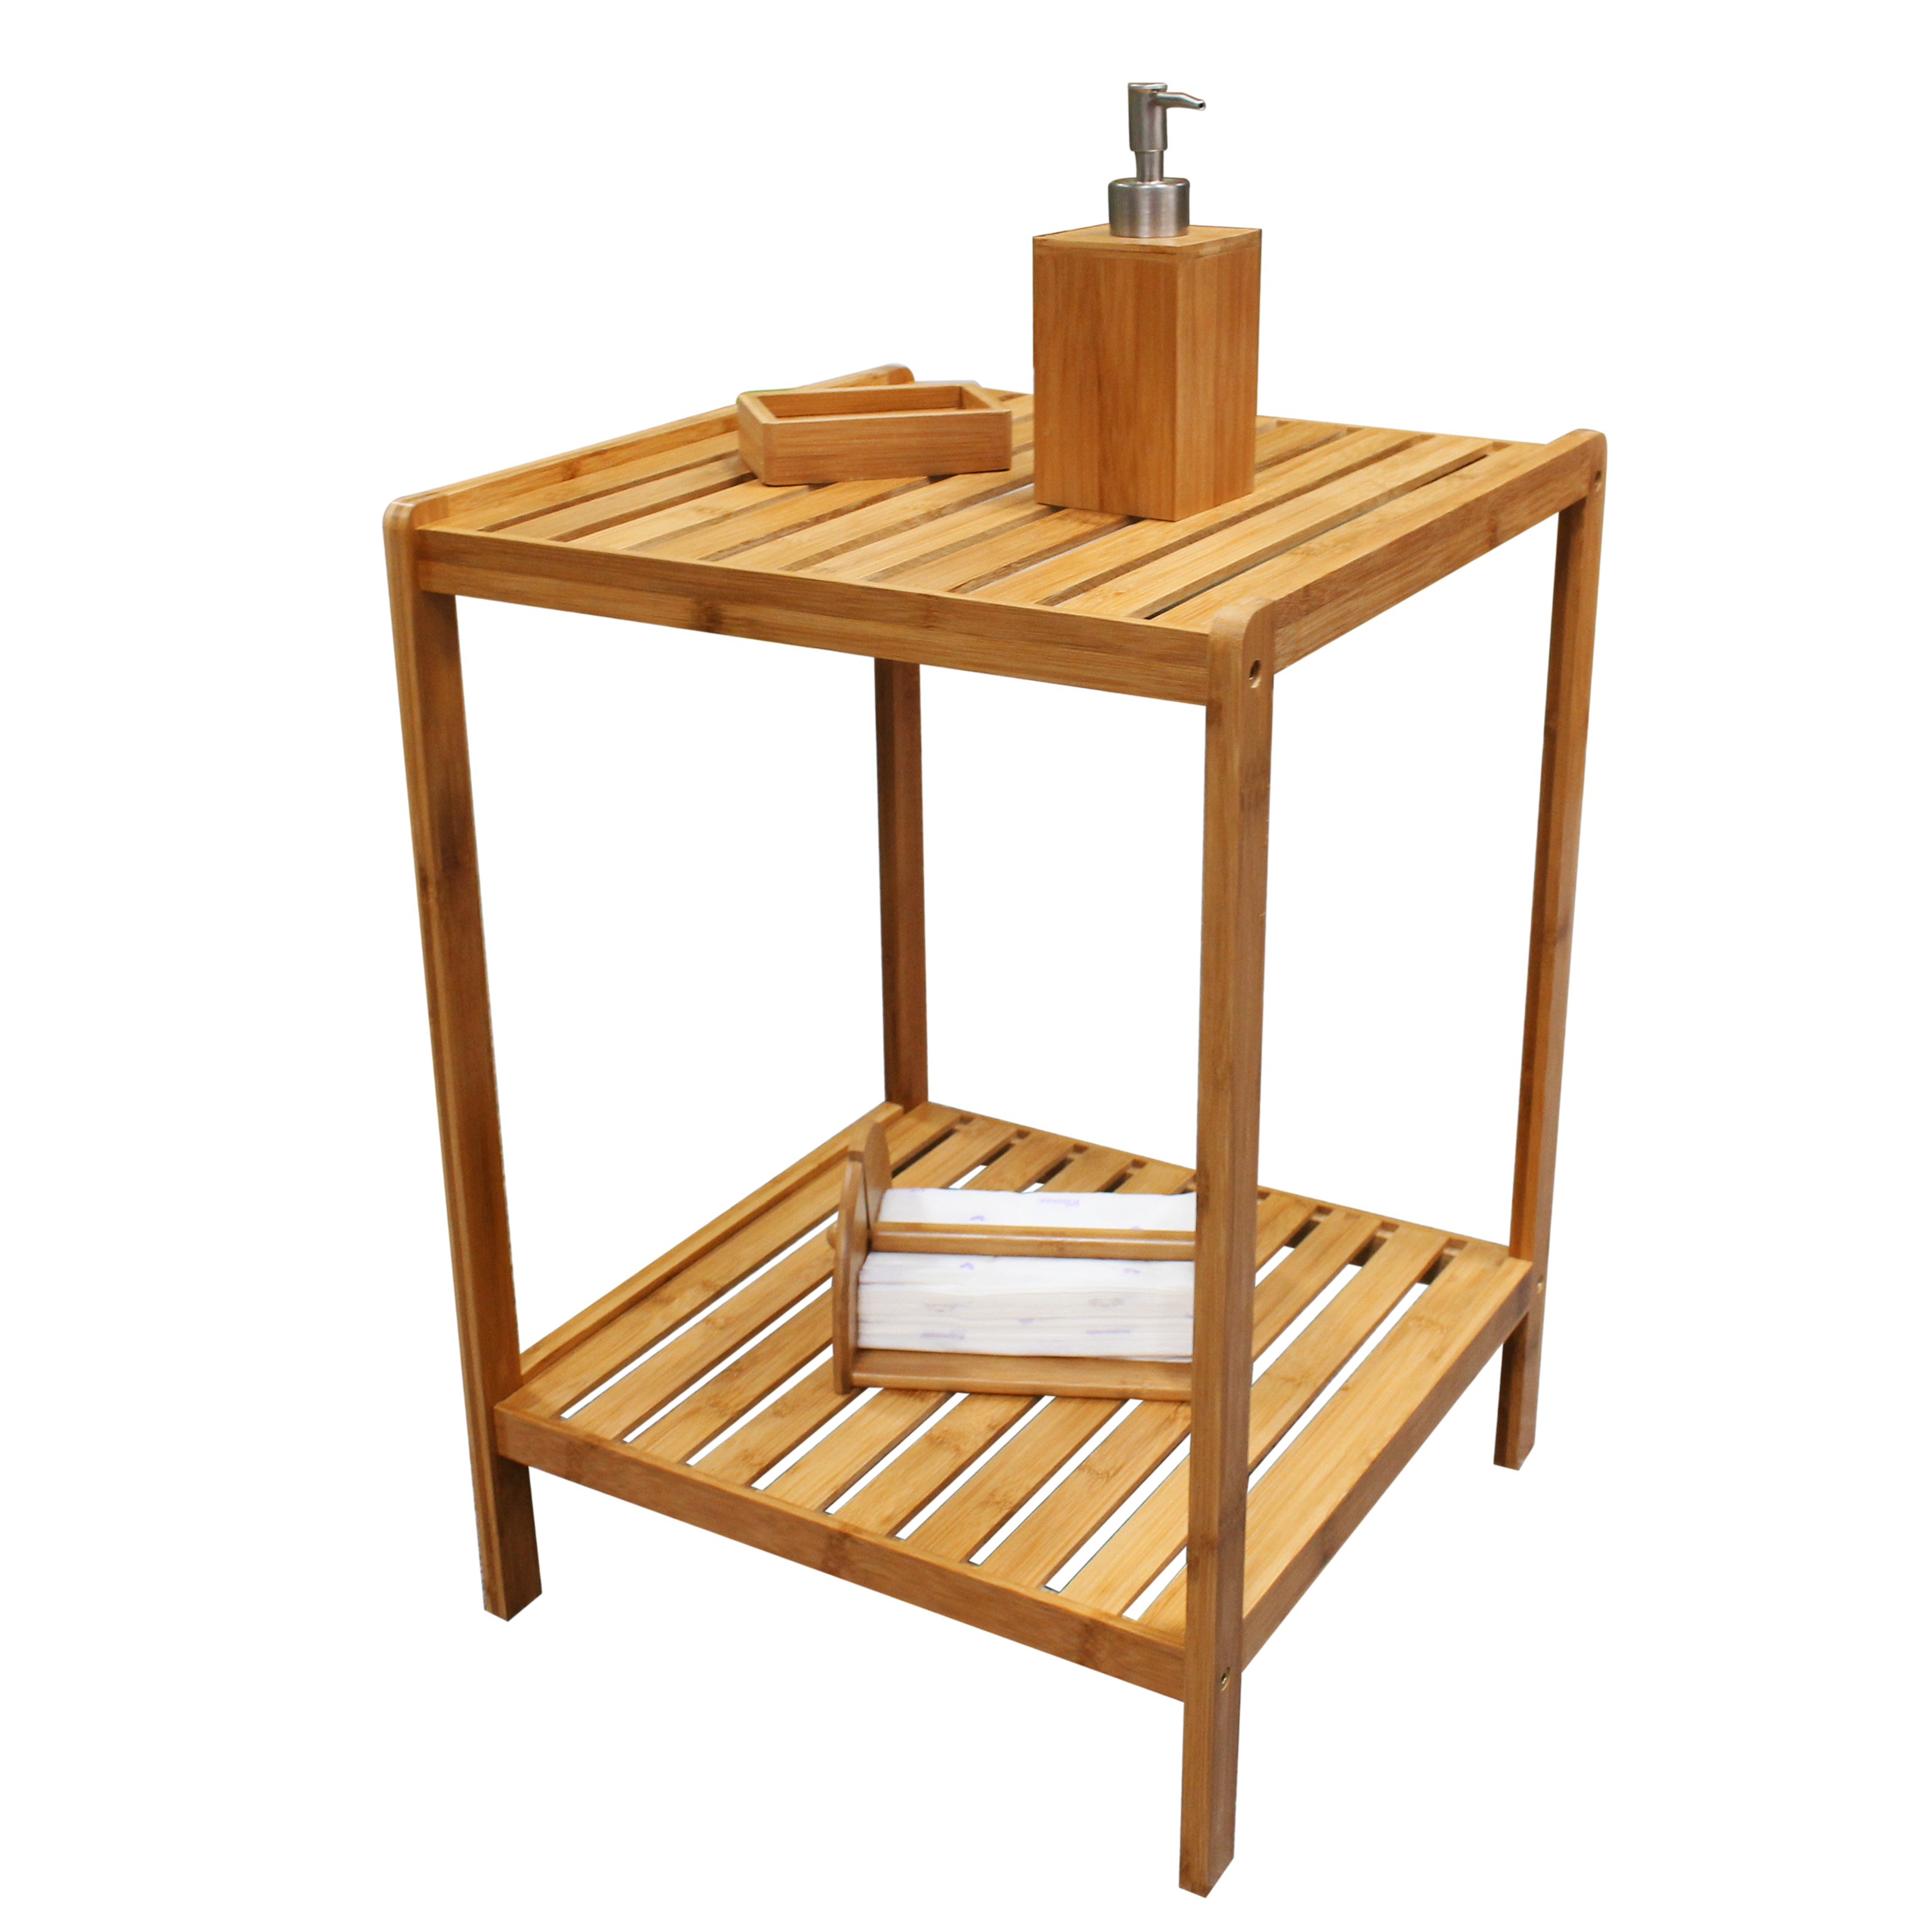 shelf by plans floating shelves bamboo the furniture double display for wall next on hous morespoons grassracks